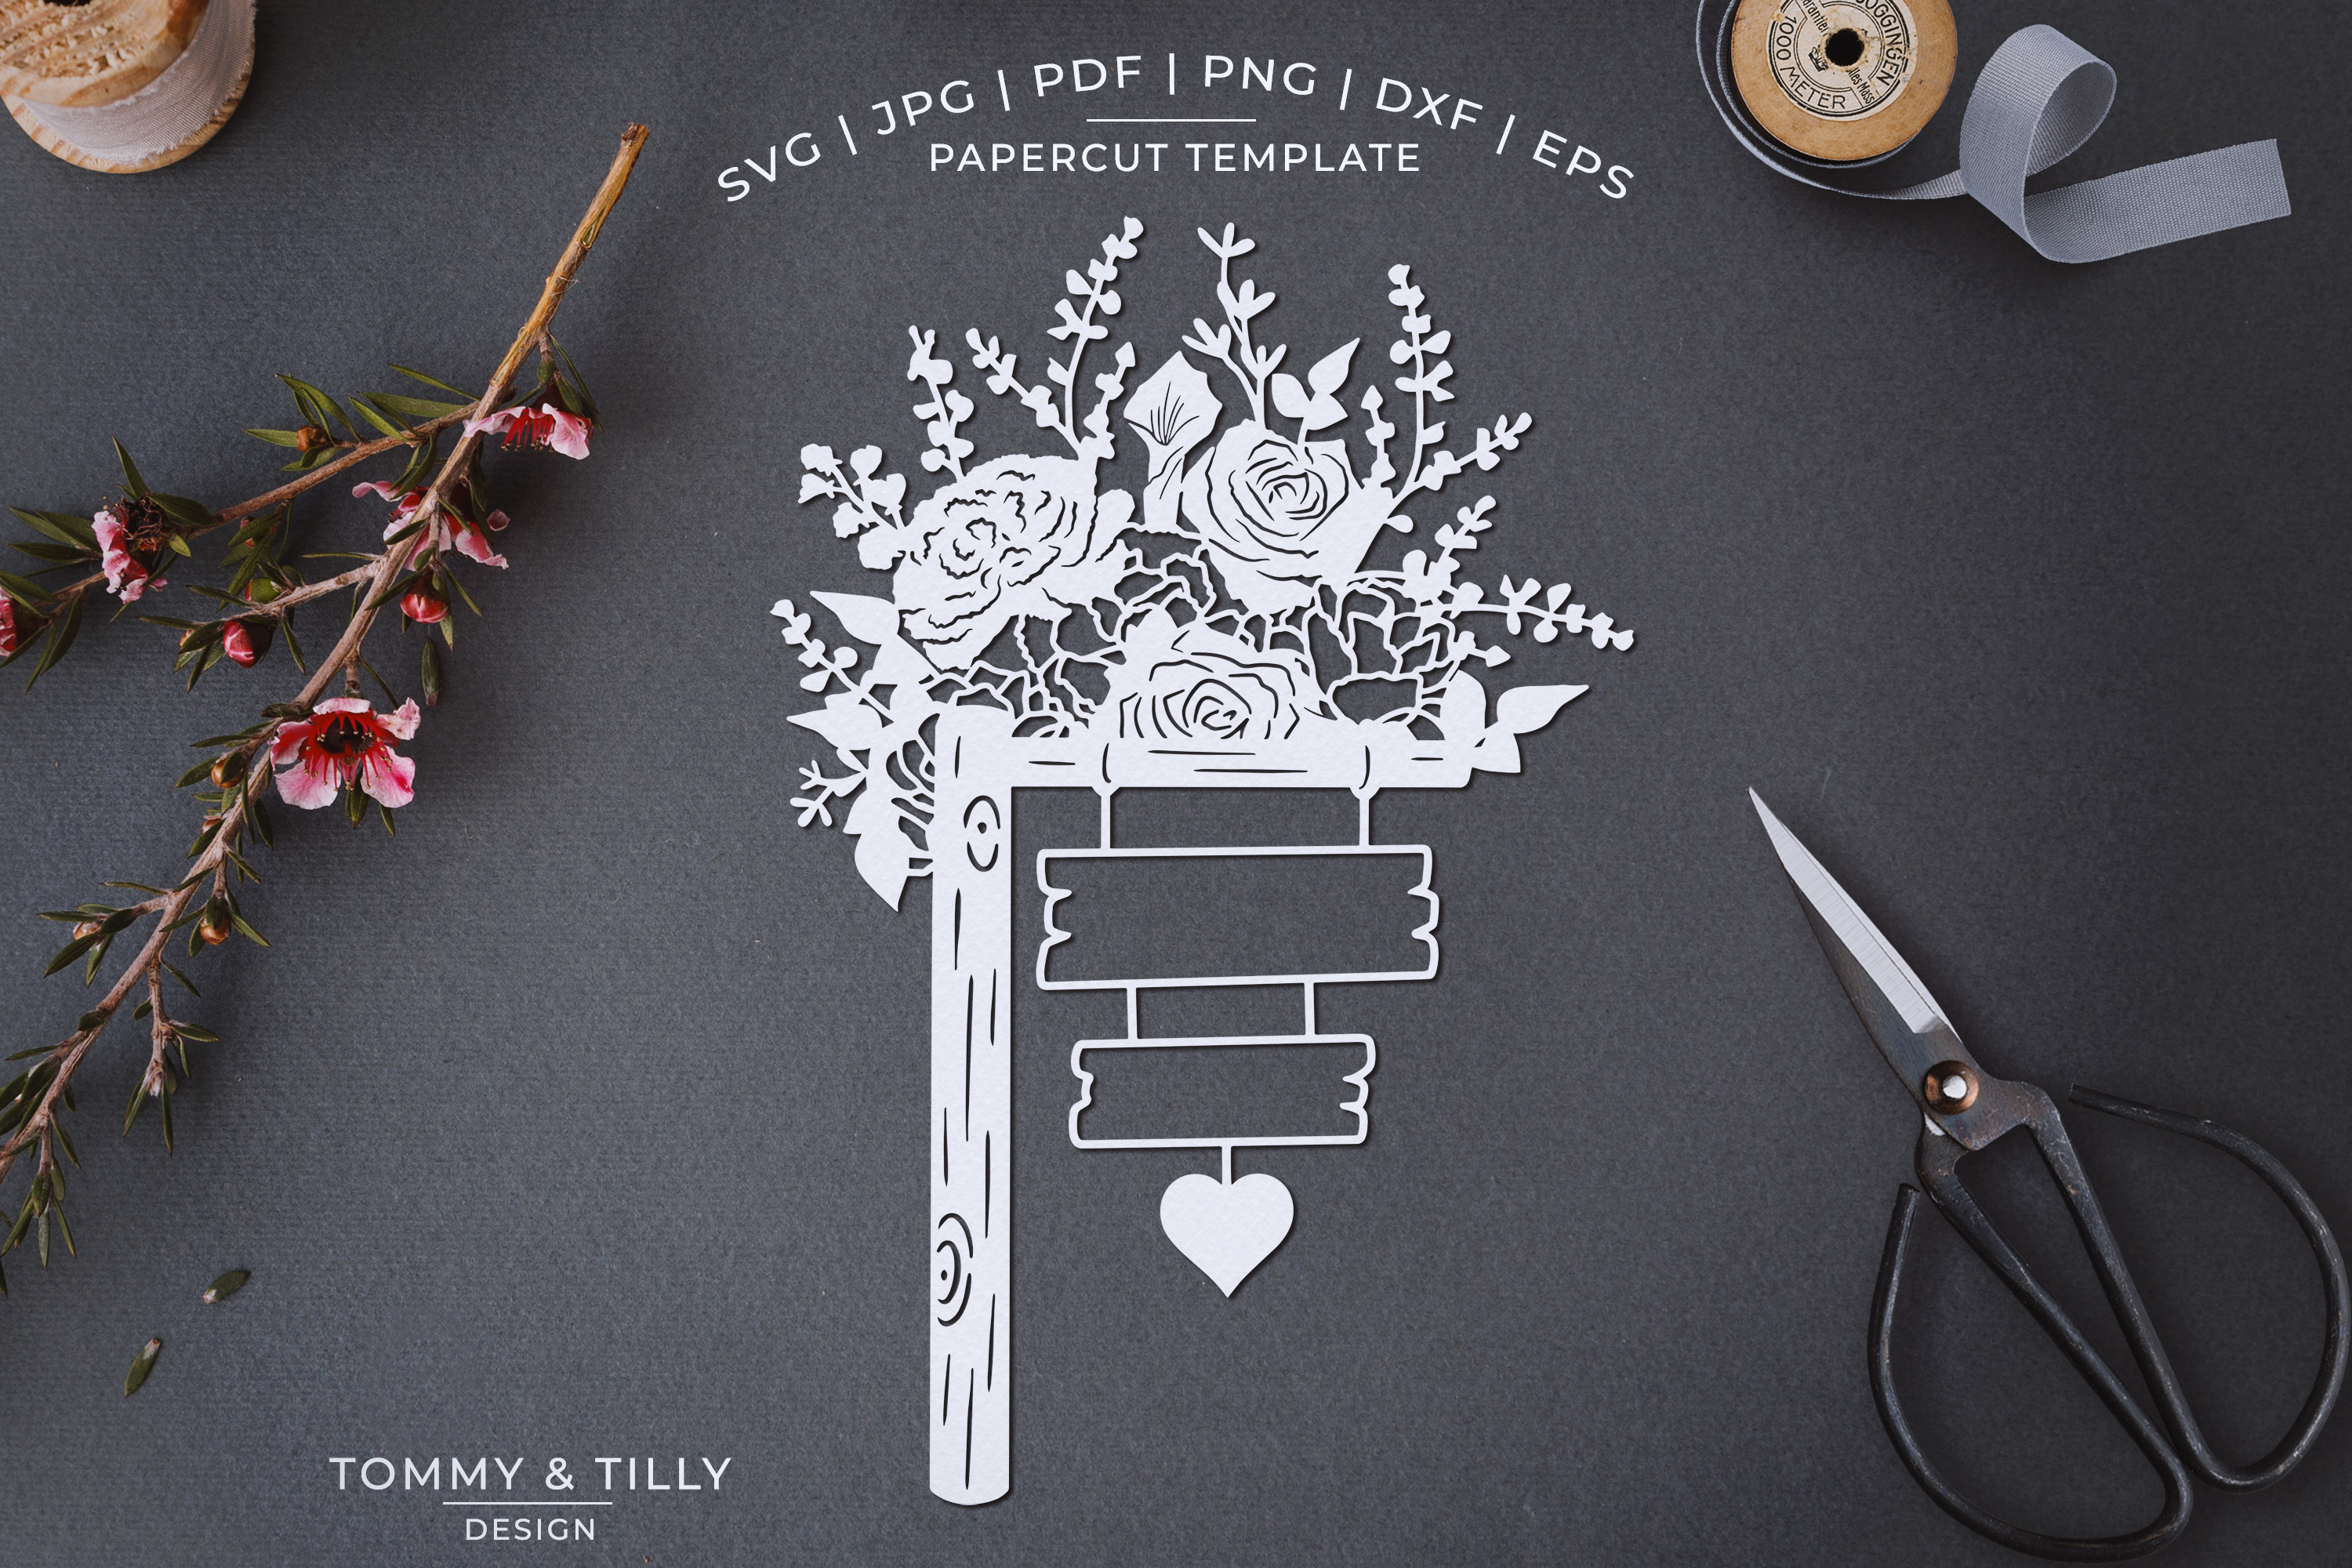 Romantic Floral Sign - Papercut Template SVG JPG PNG example image 1